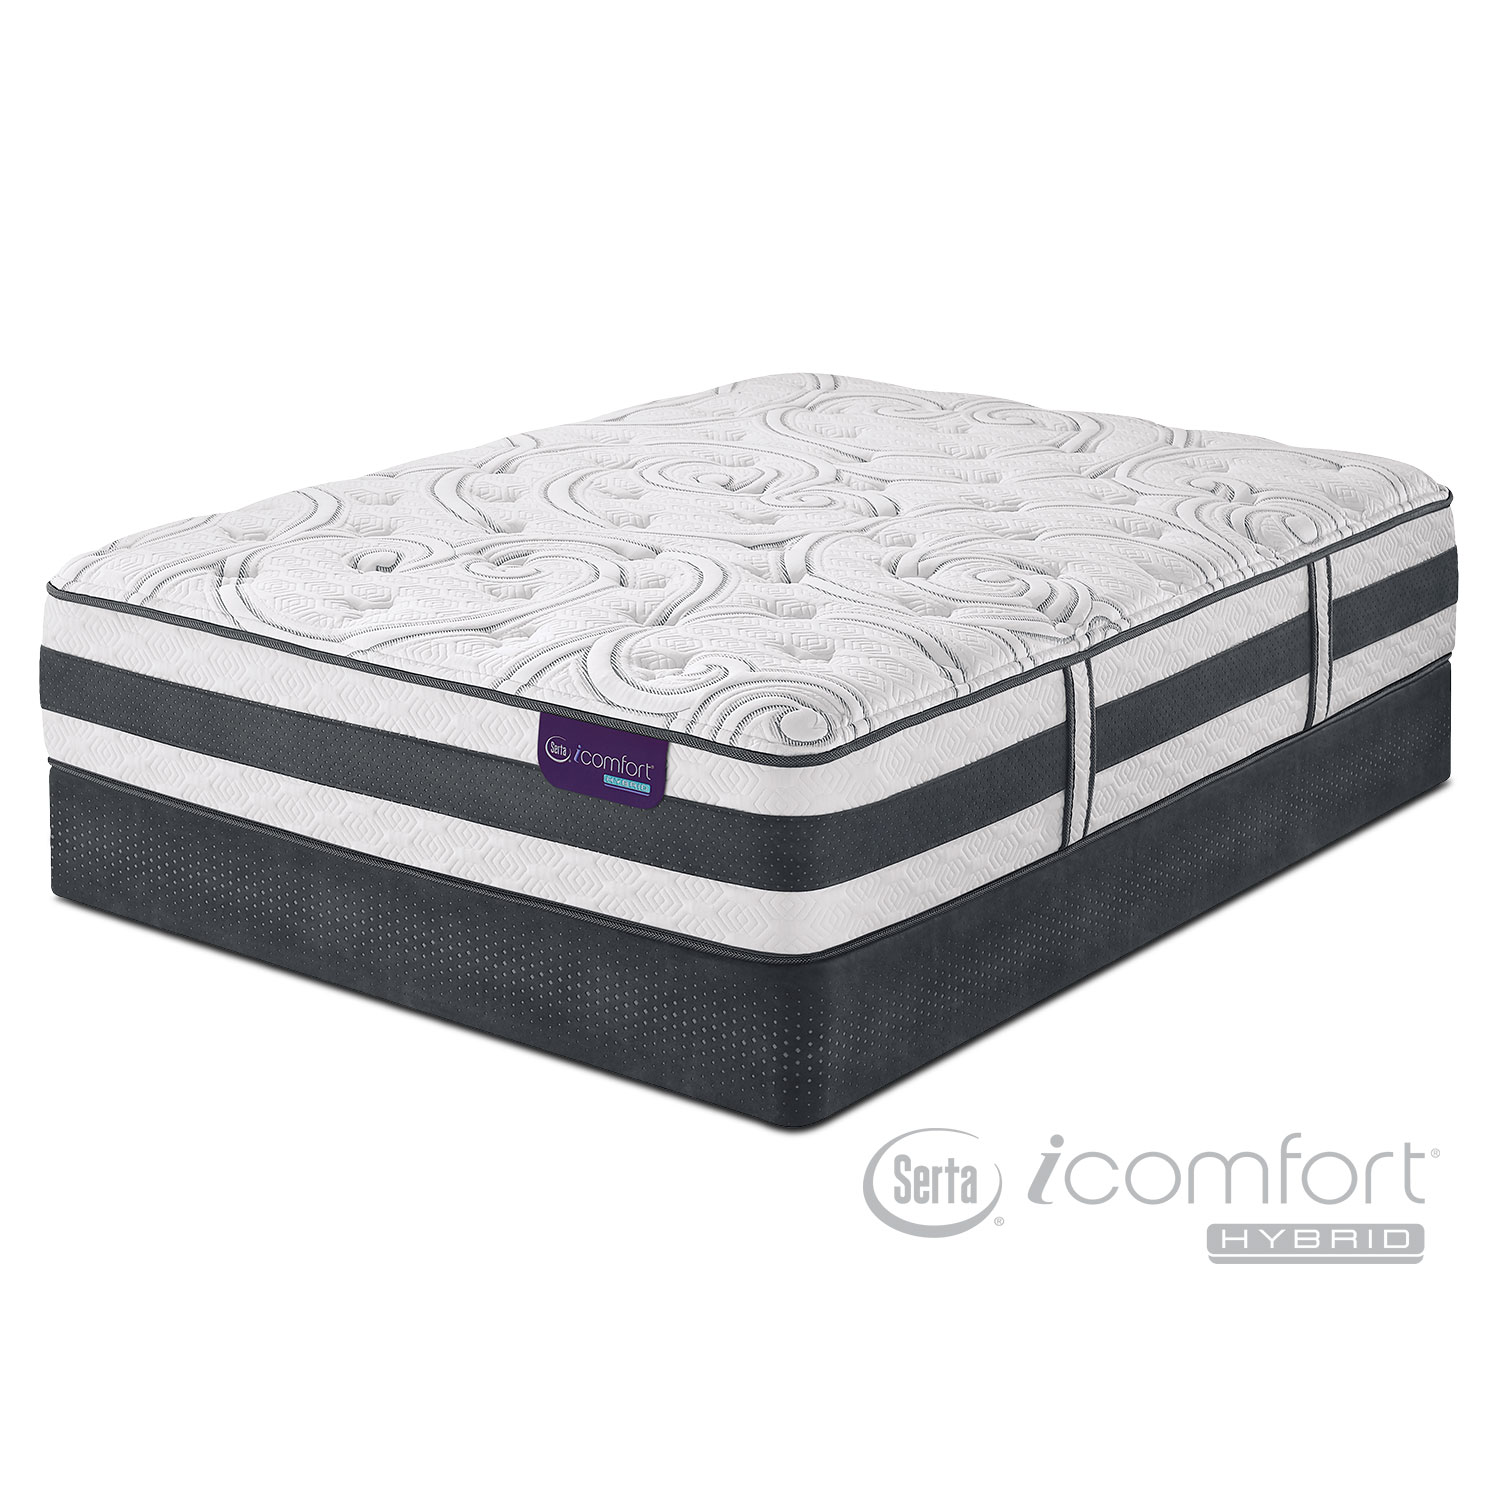 Mattresses and Bedding - Applause II Plush Queen Mattress/Foundation Set